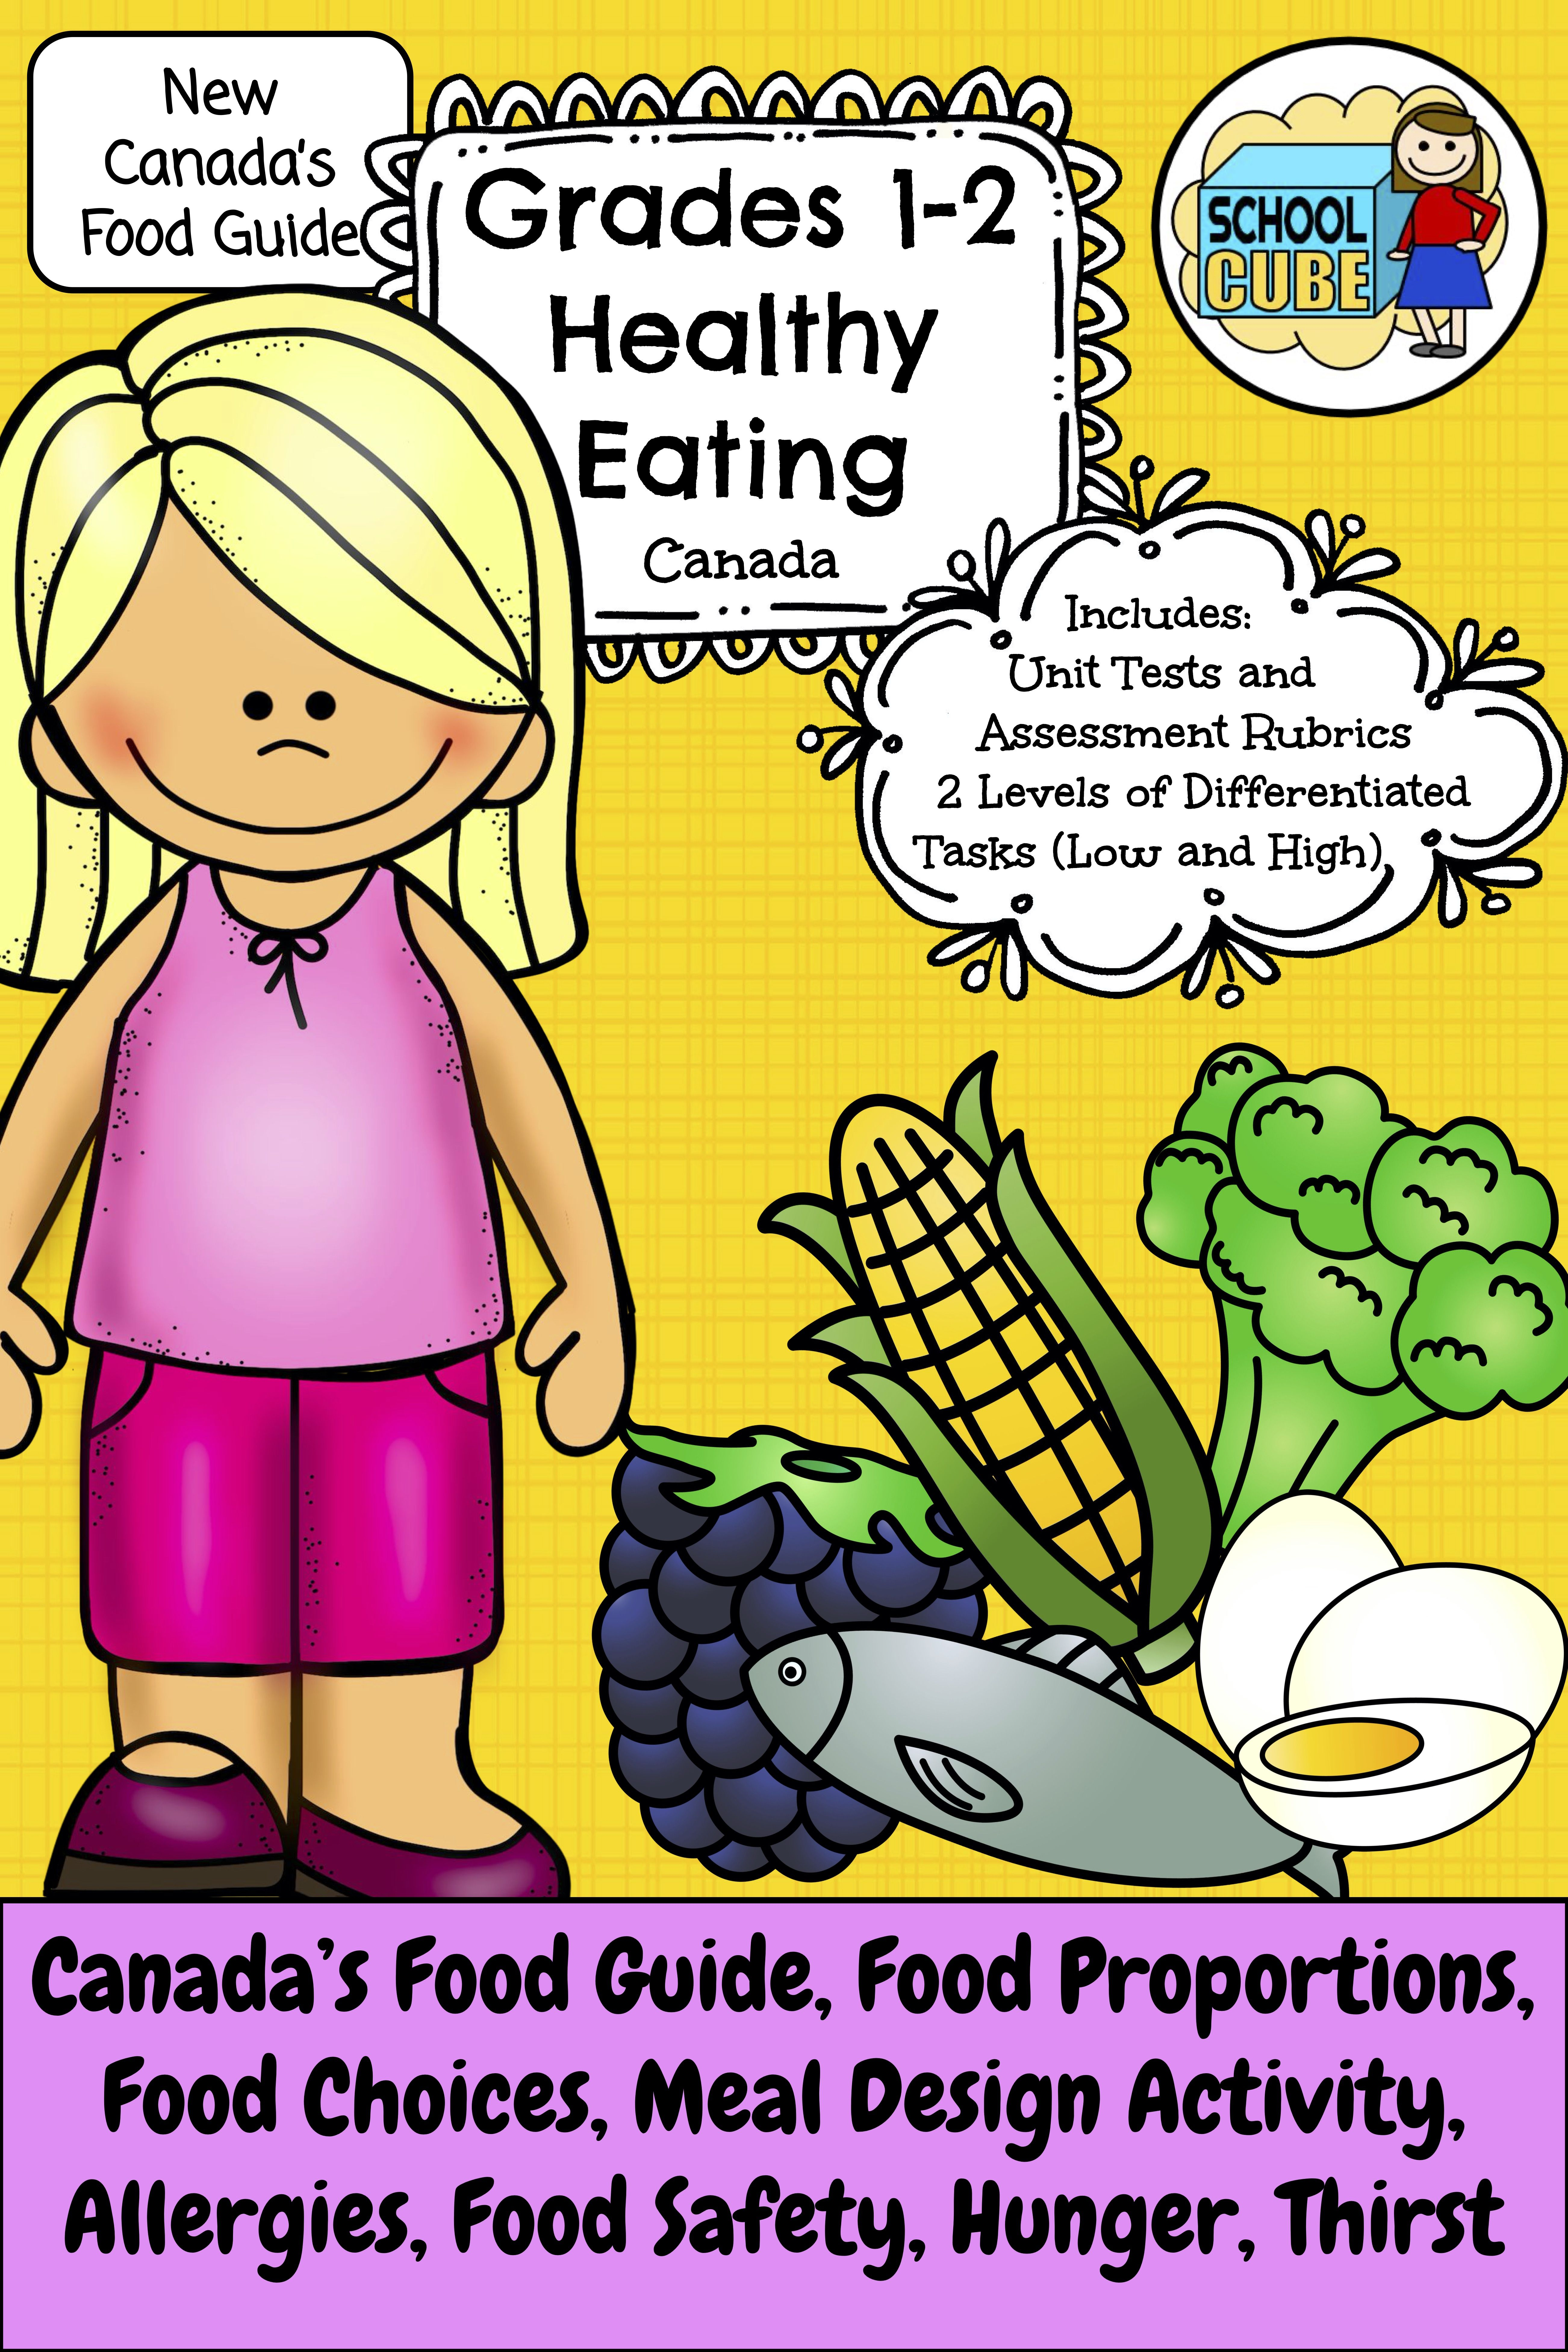 Grades 1 2 Healthy Eating Canada New Food Guide